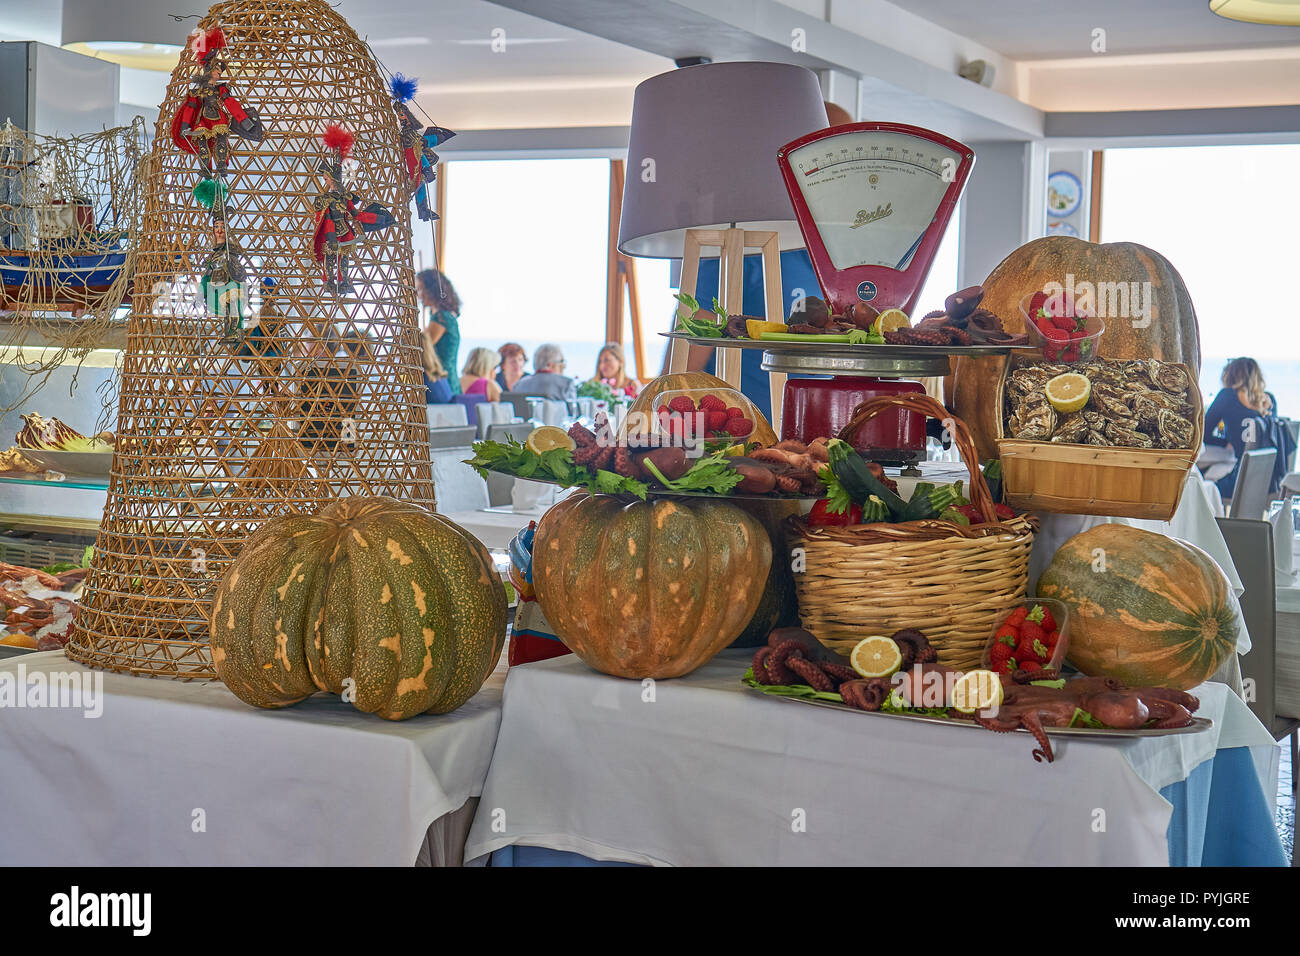 Local food on display in a restaurant in Palermo - Stock Image